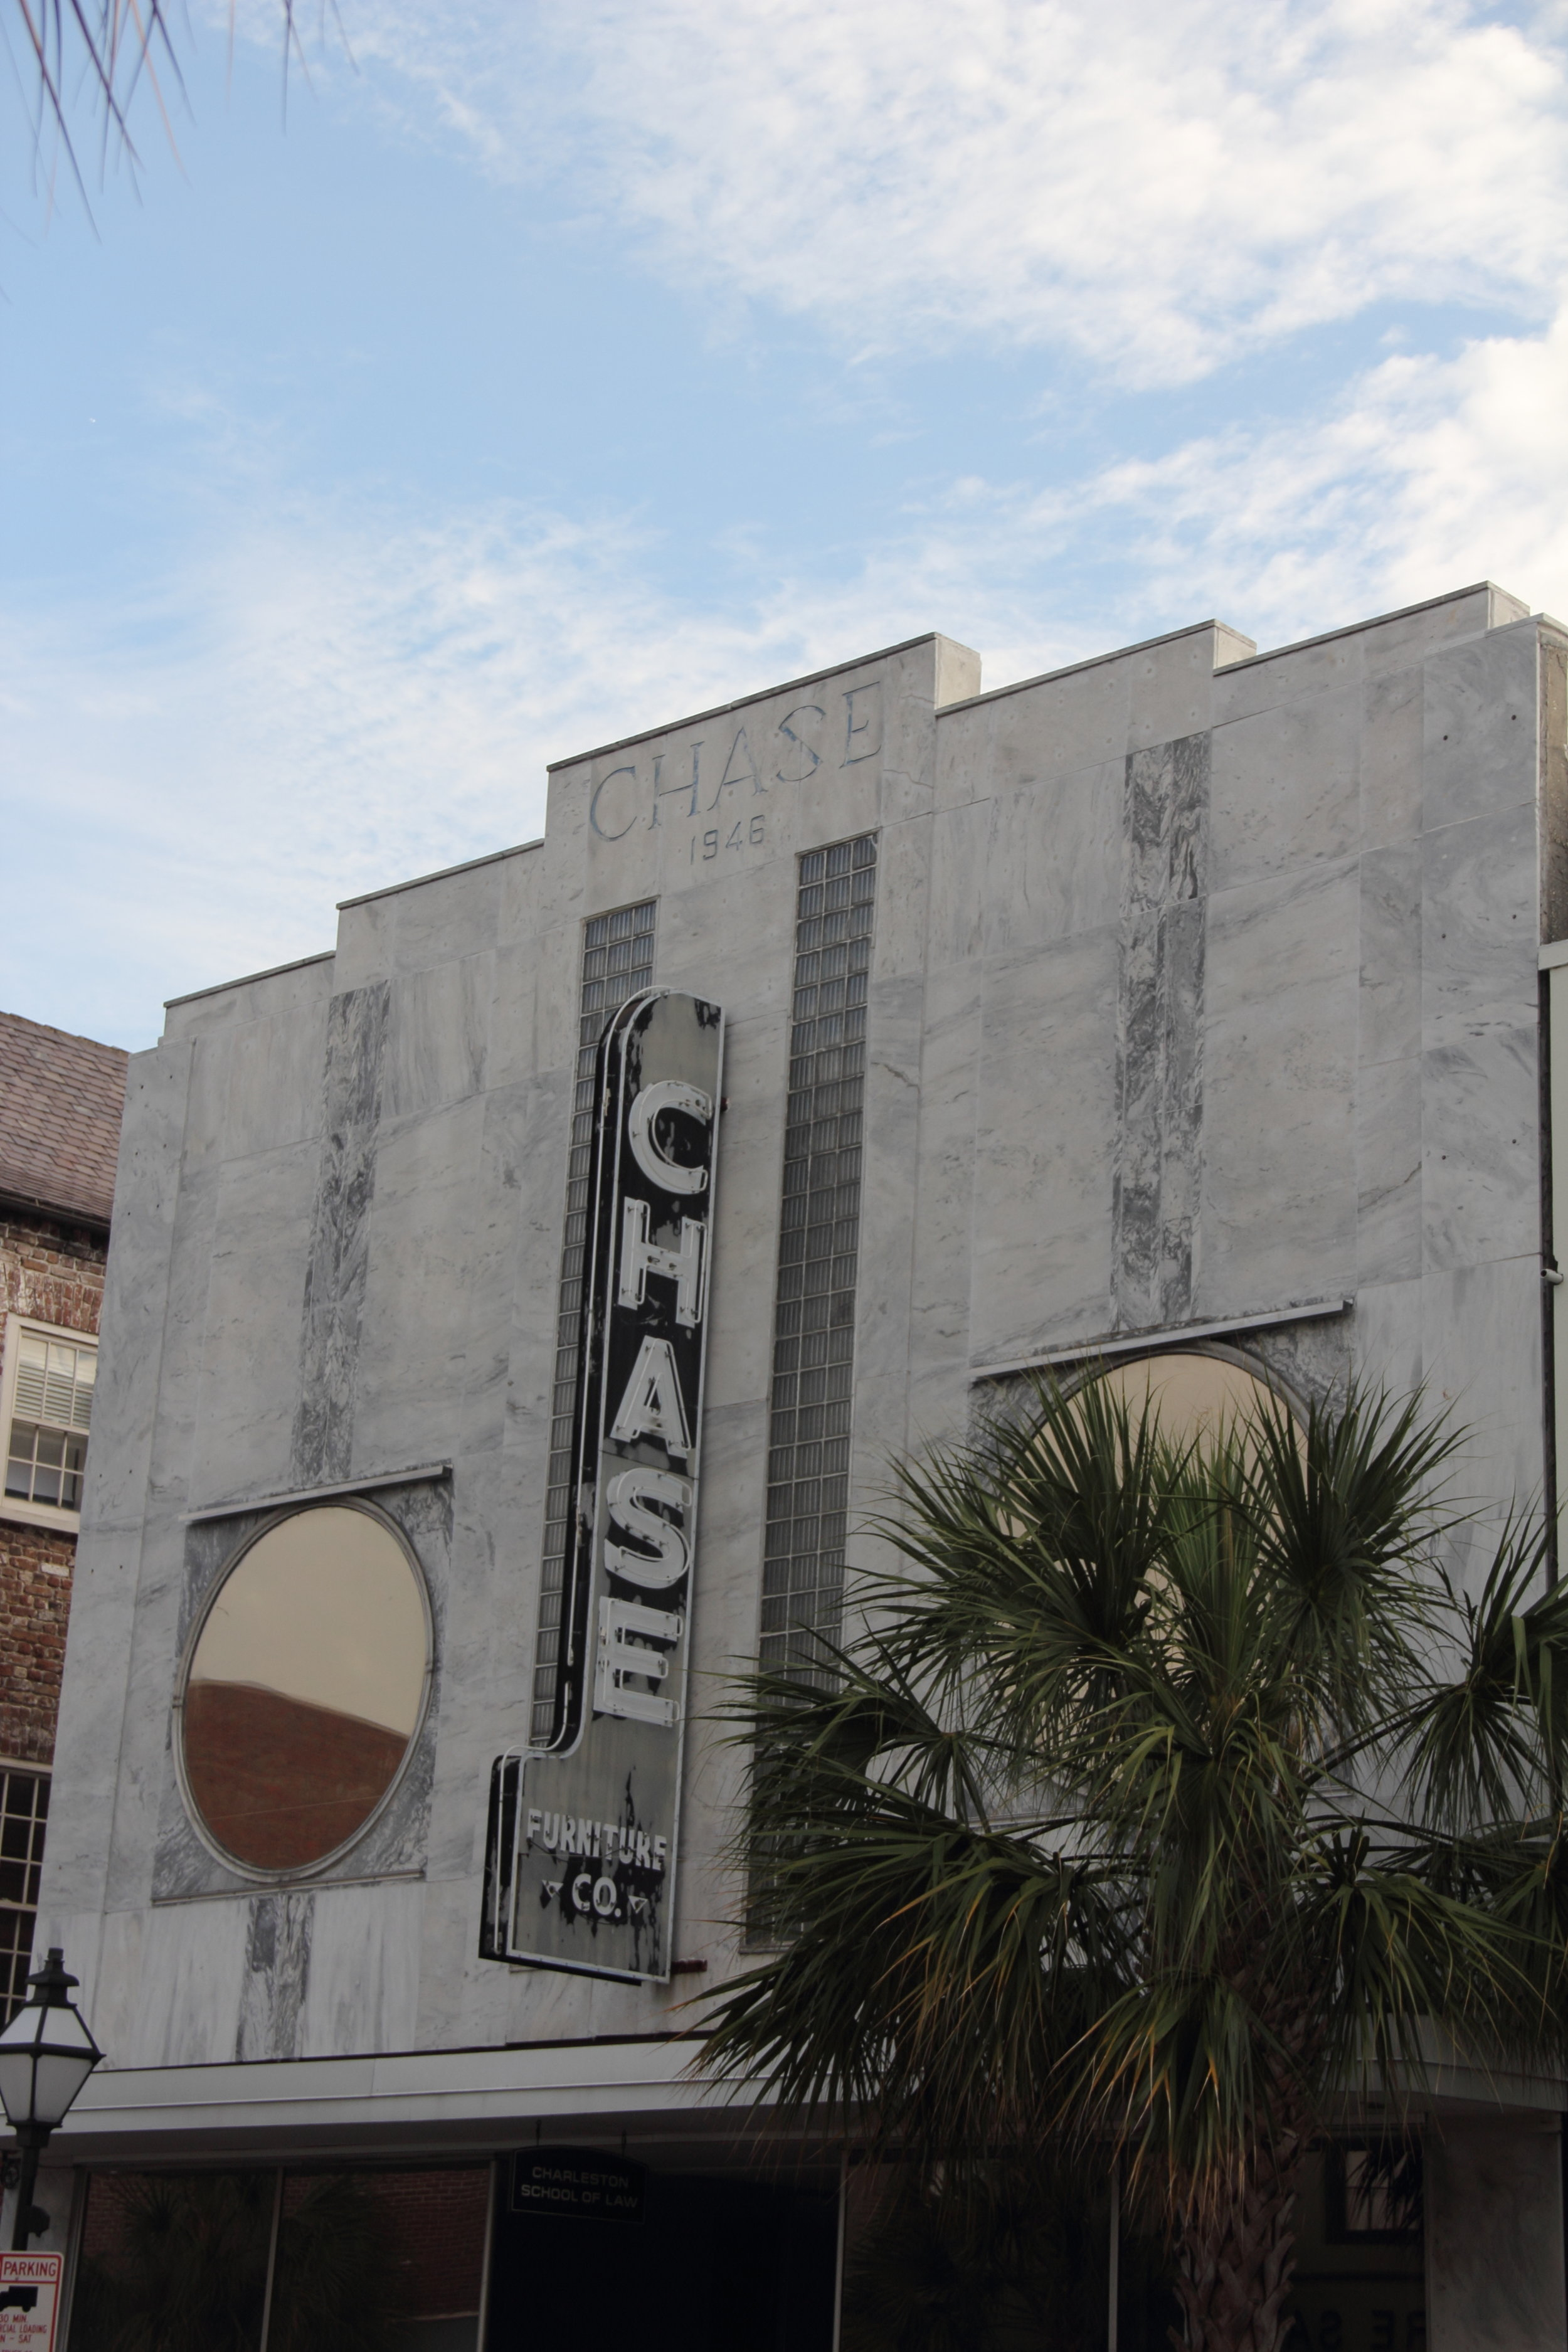 Self-guided architecture tour in downtown Charleston, South Carolina